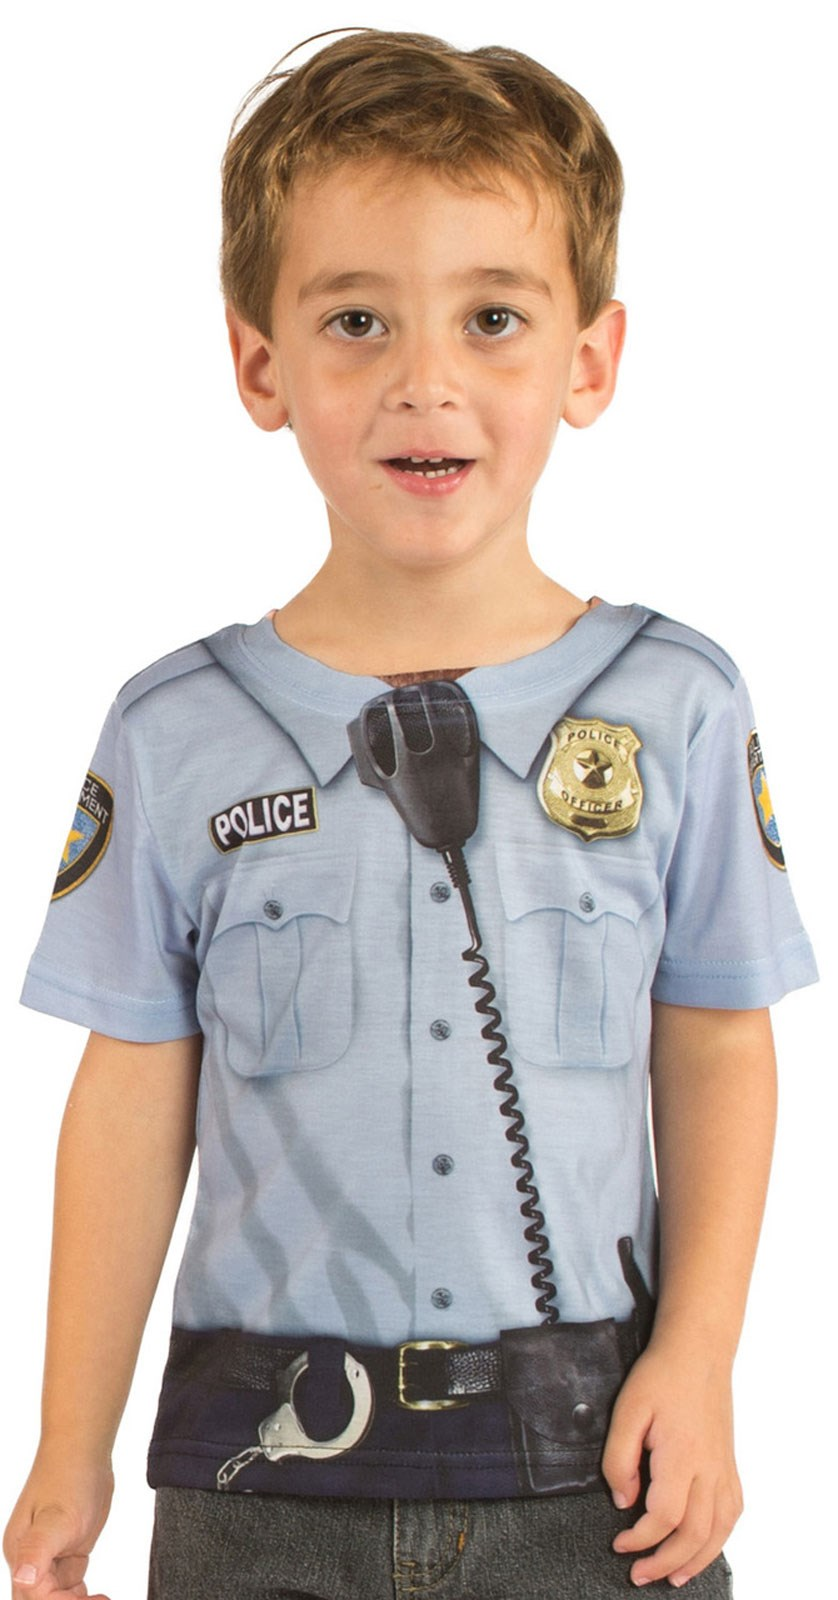 Policeman T-Shirt For Toddlers